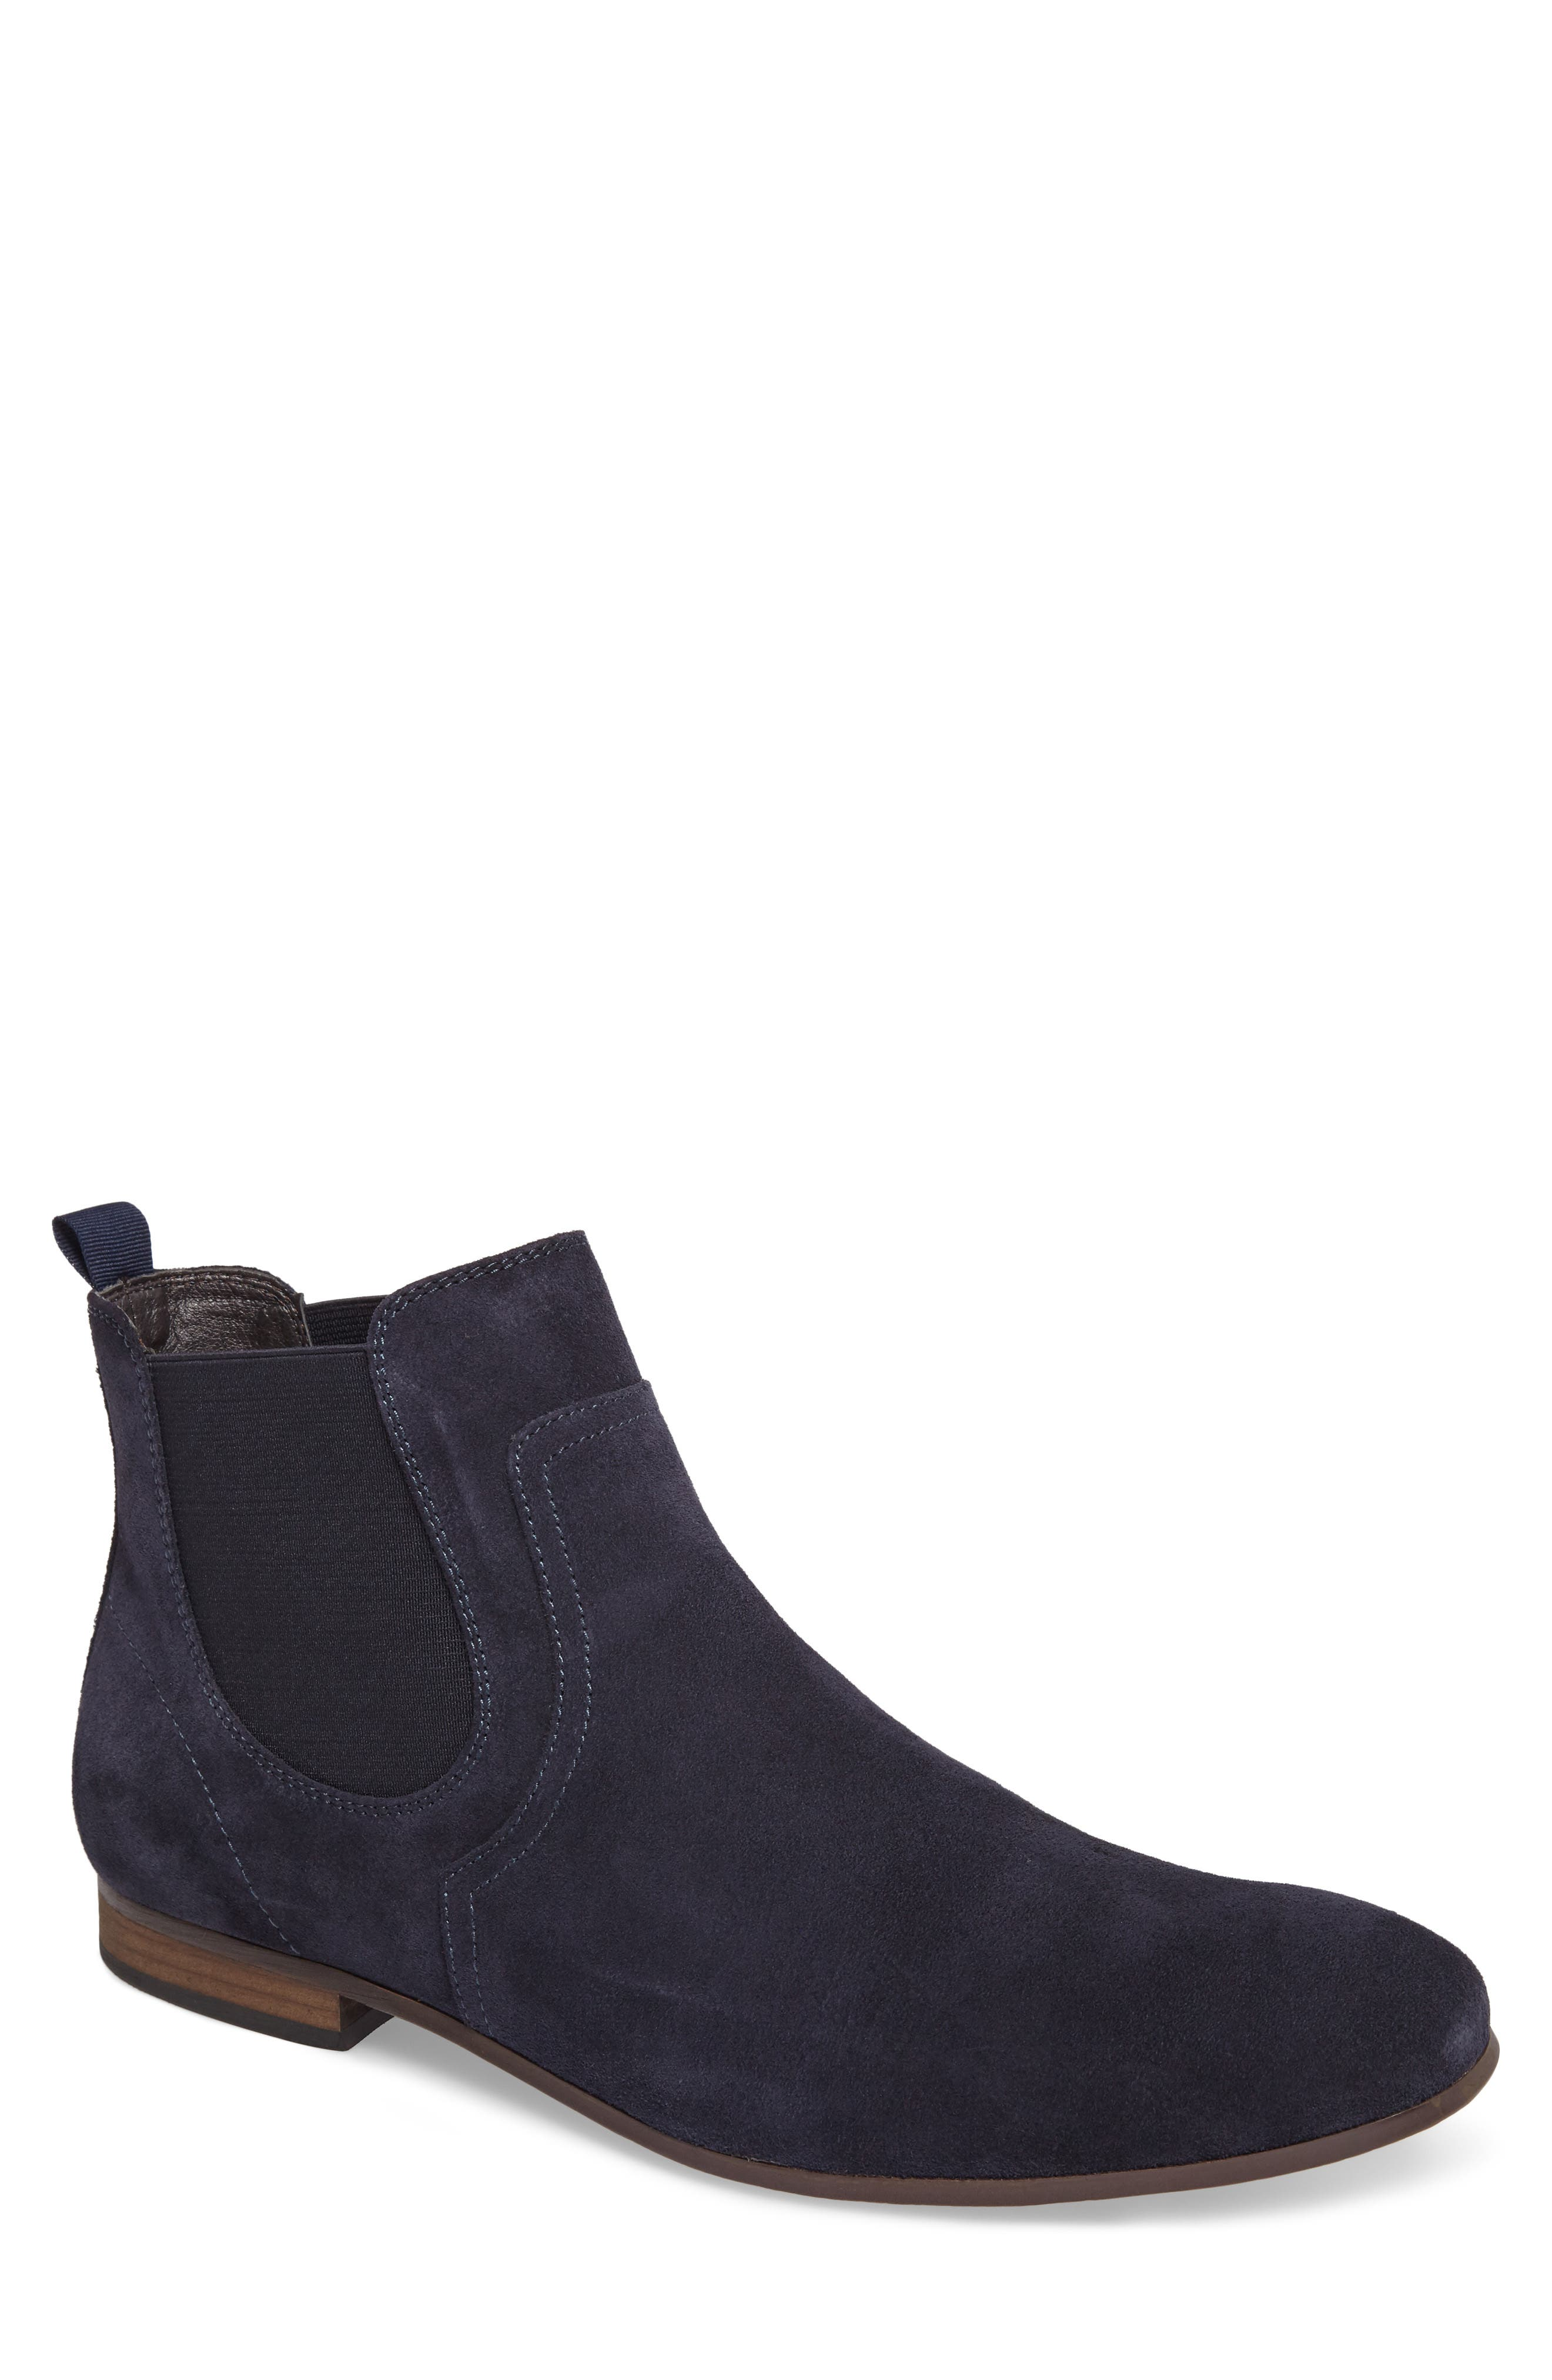 Brysen Chelsea Boot,                             Alternate thumbnail 21, color,